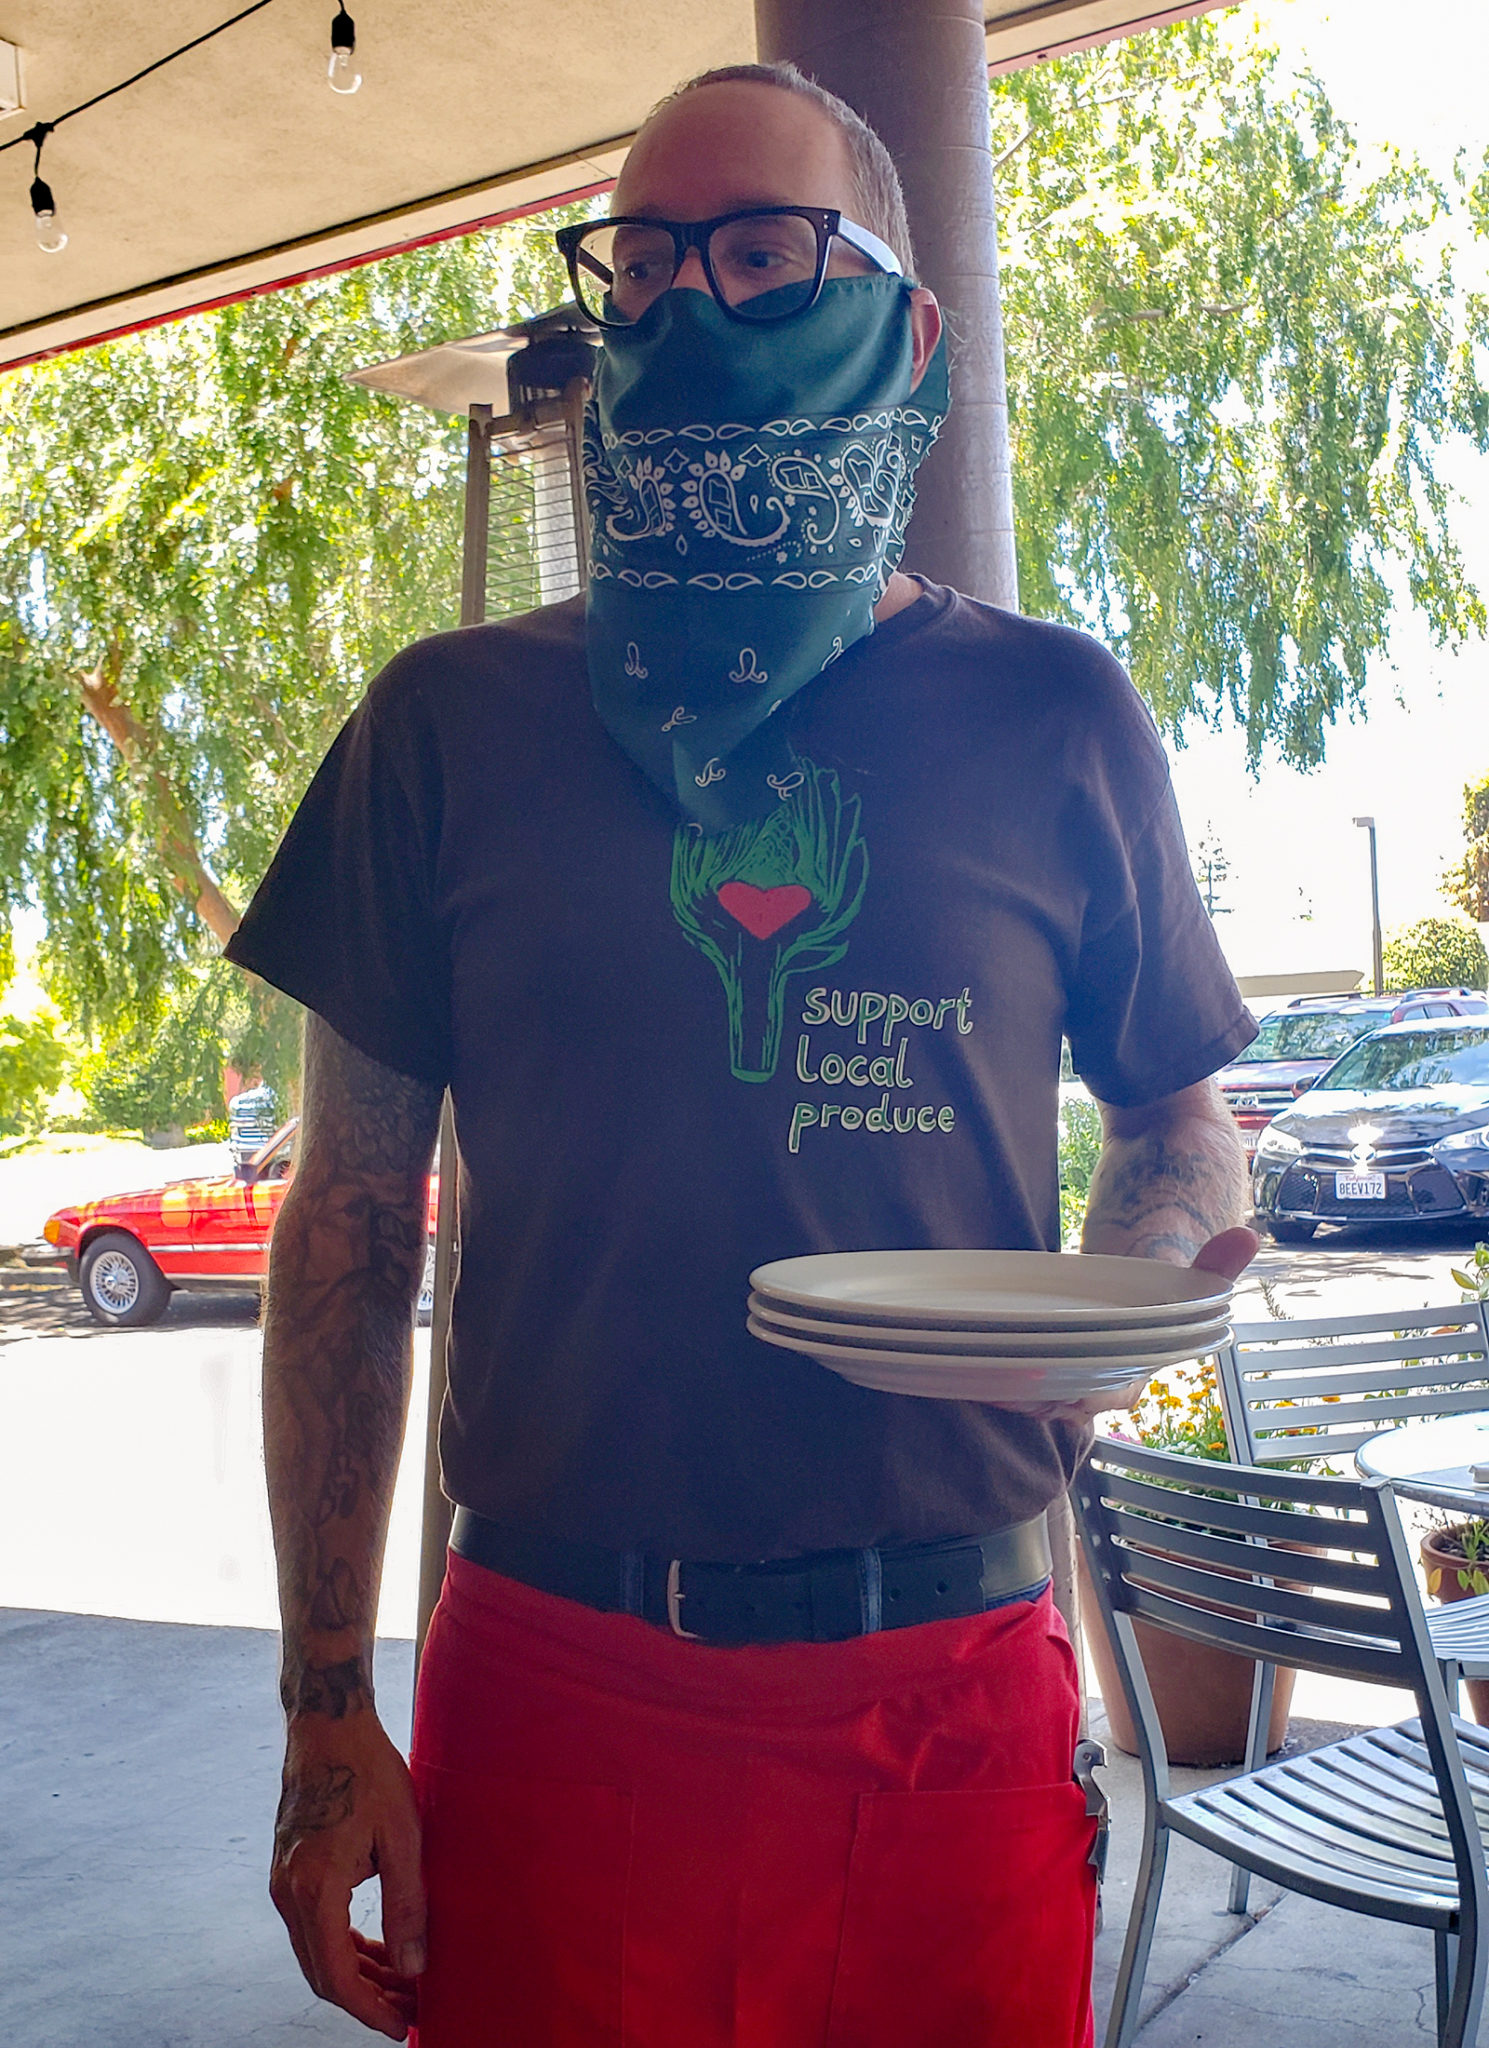 Rosso Pizzeria in Santa Rosa has reopened for patio dining. Heather Irwin/PD